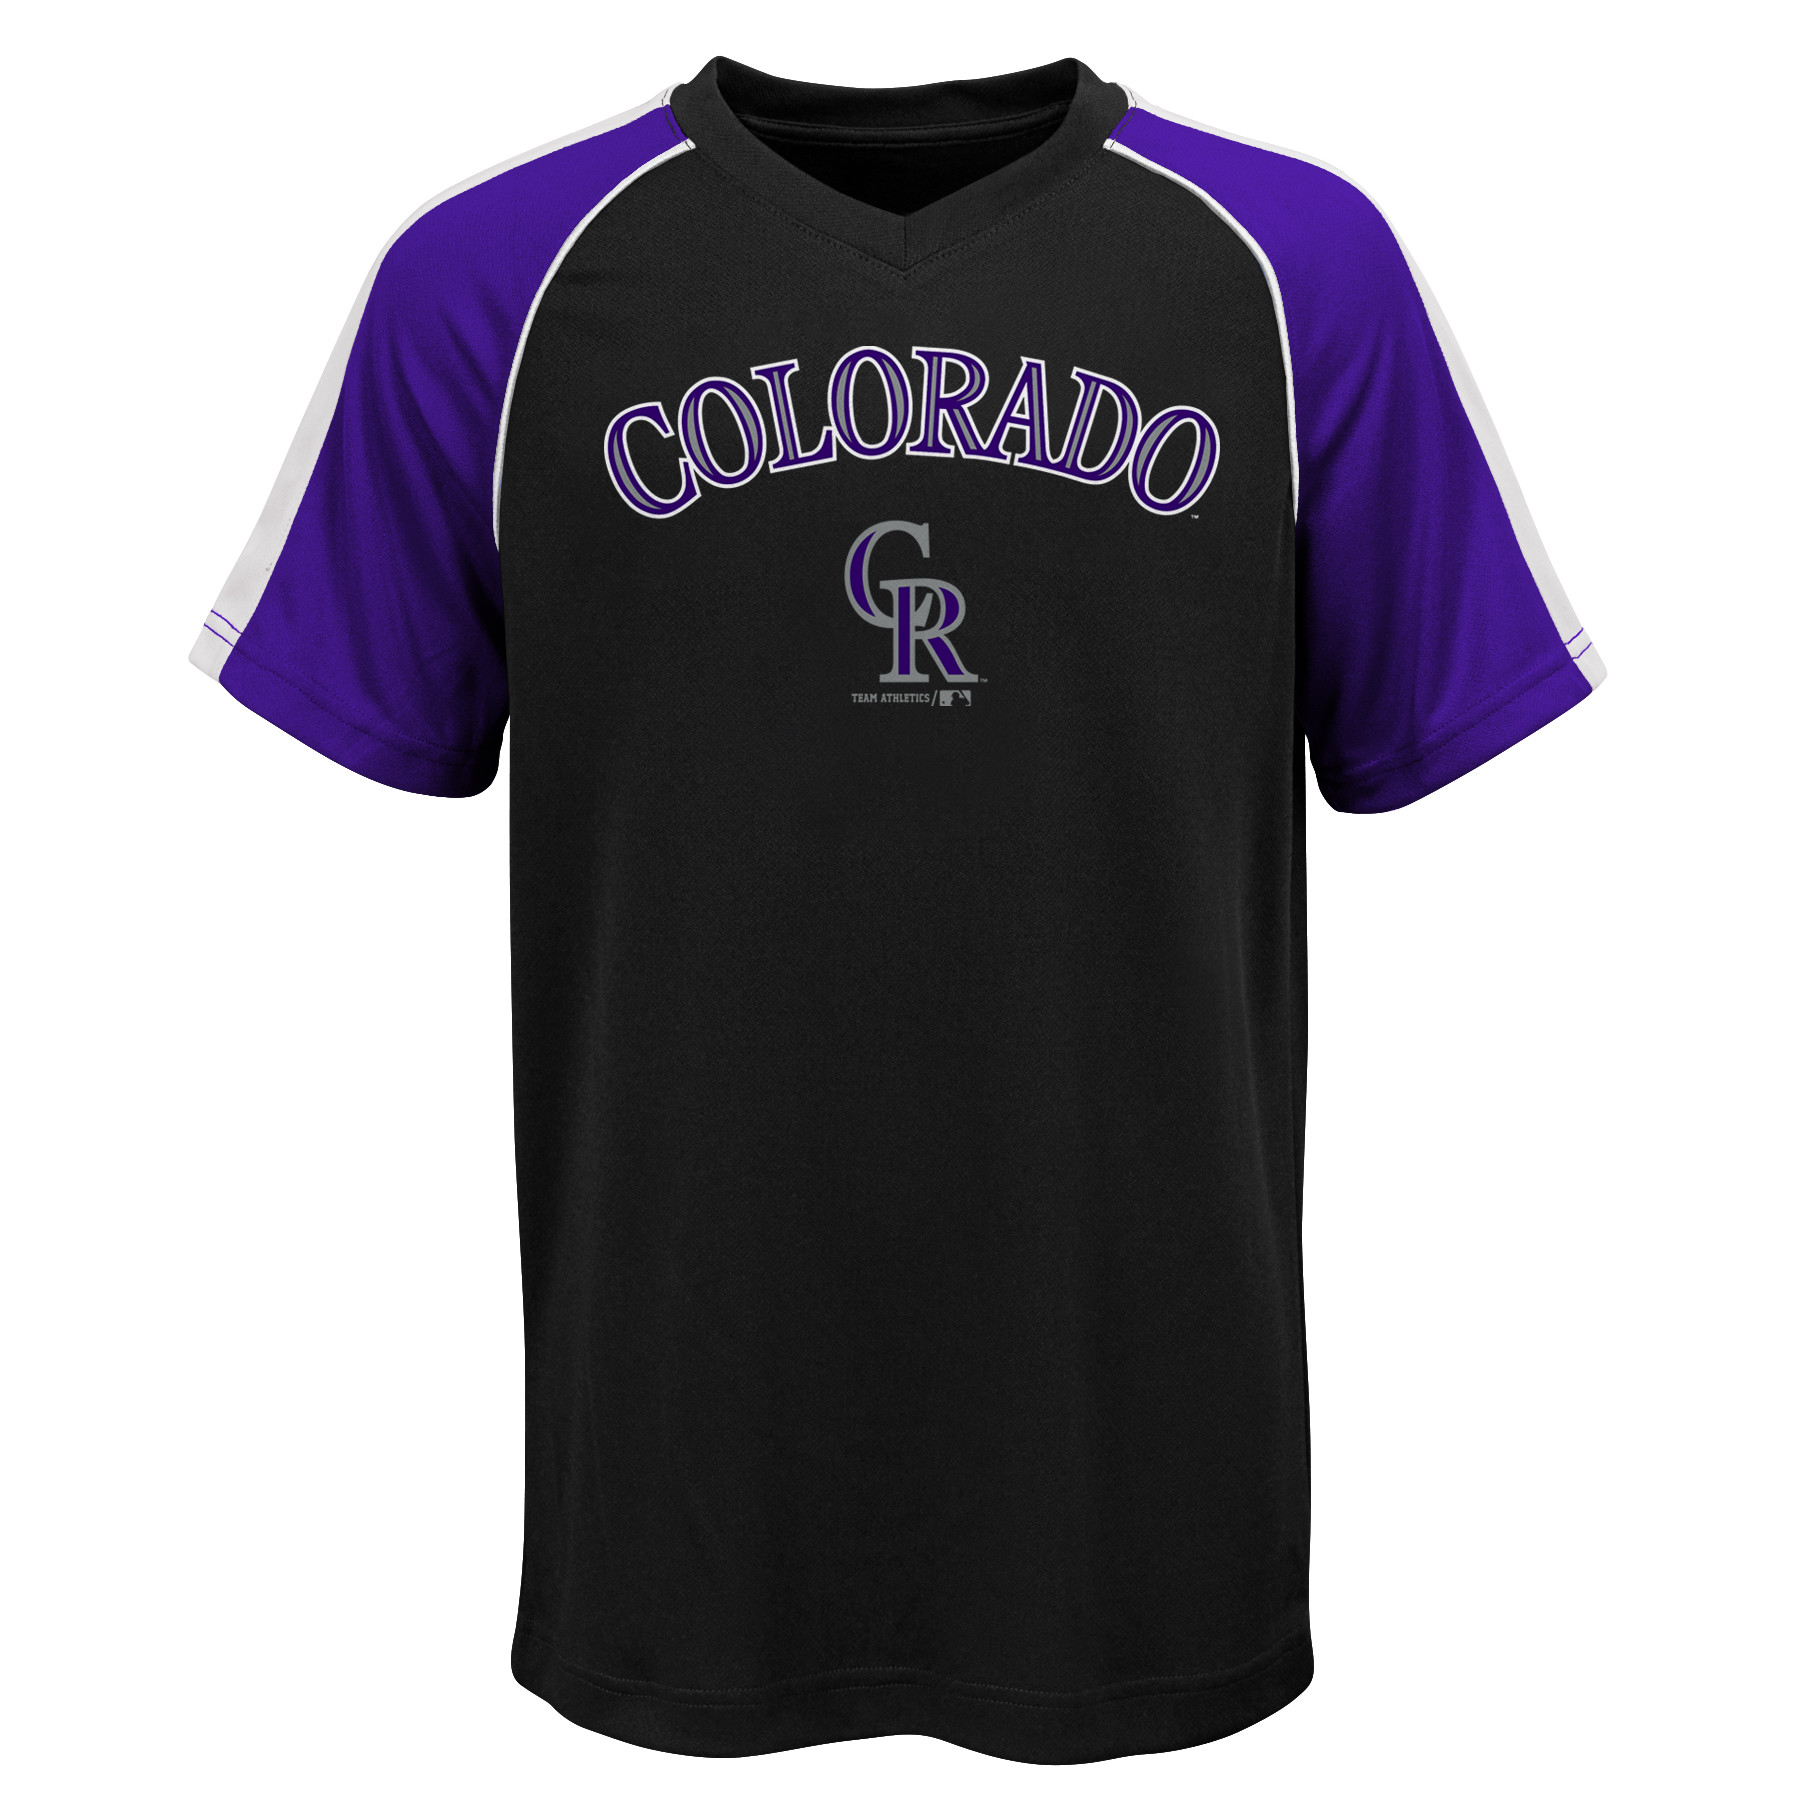 MLB Colorado ROCKIES TEE Short Sleeve Boys Fashion Jersey Tee 100% Polyester Pin Dot Mesh Jersey Team Tee 4-18